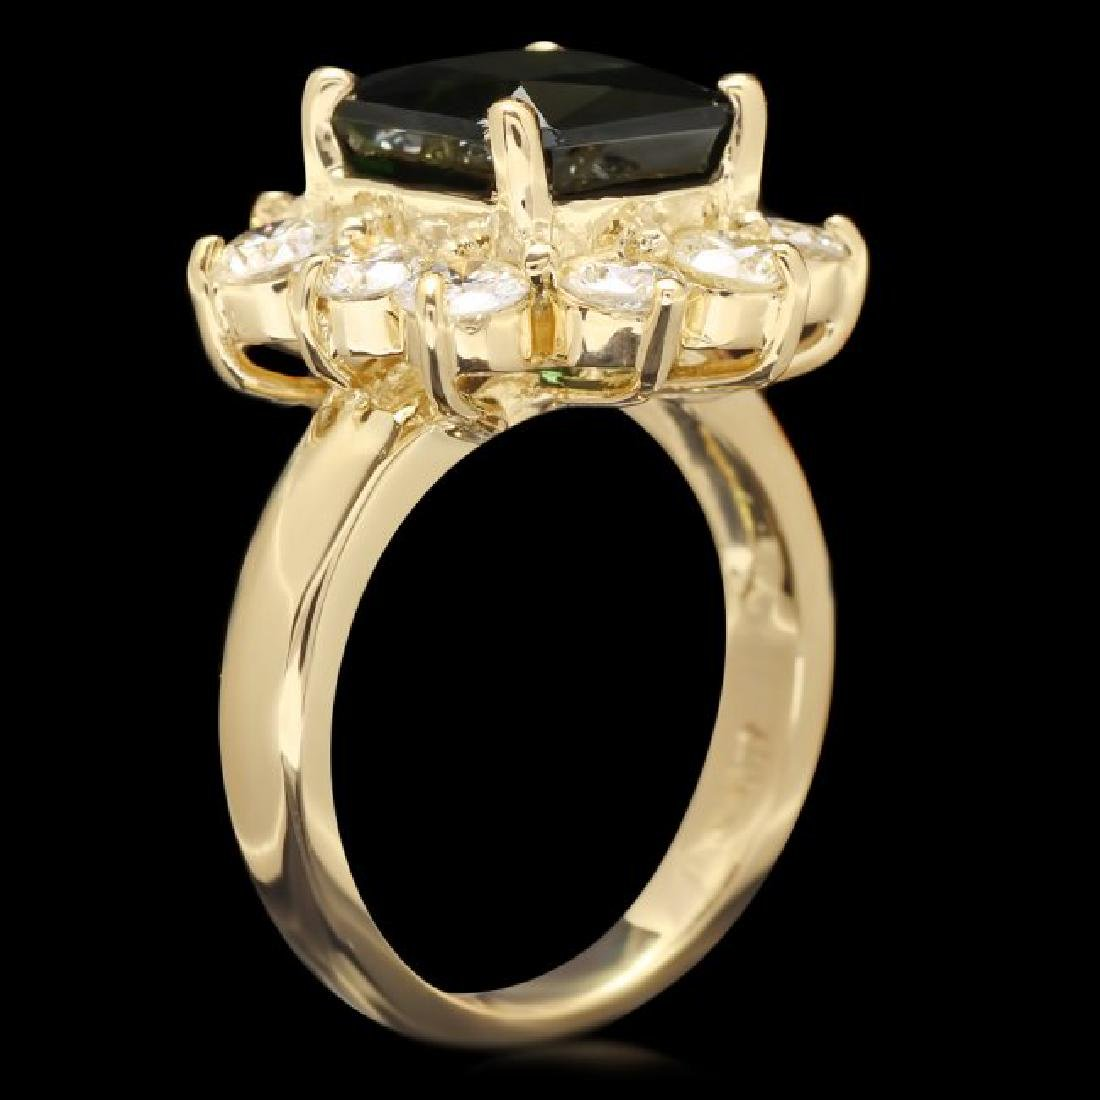 14k Gold 4ct Tourmaline 1.80ct Diamond Ring - 3